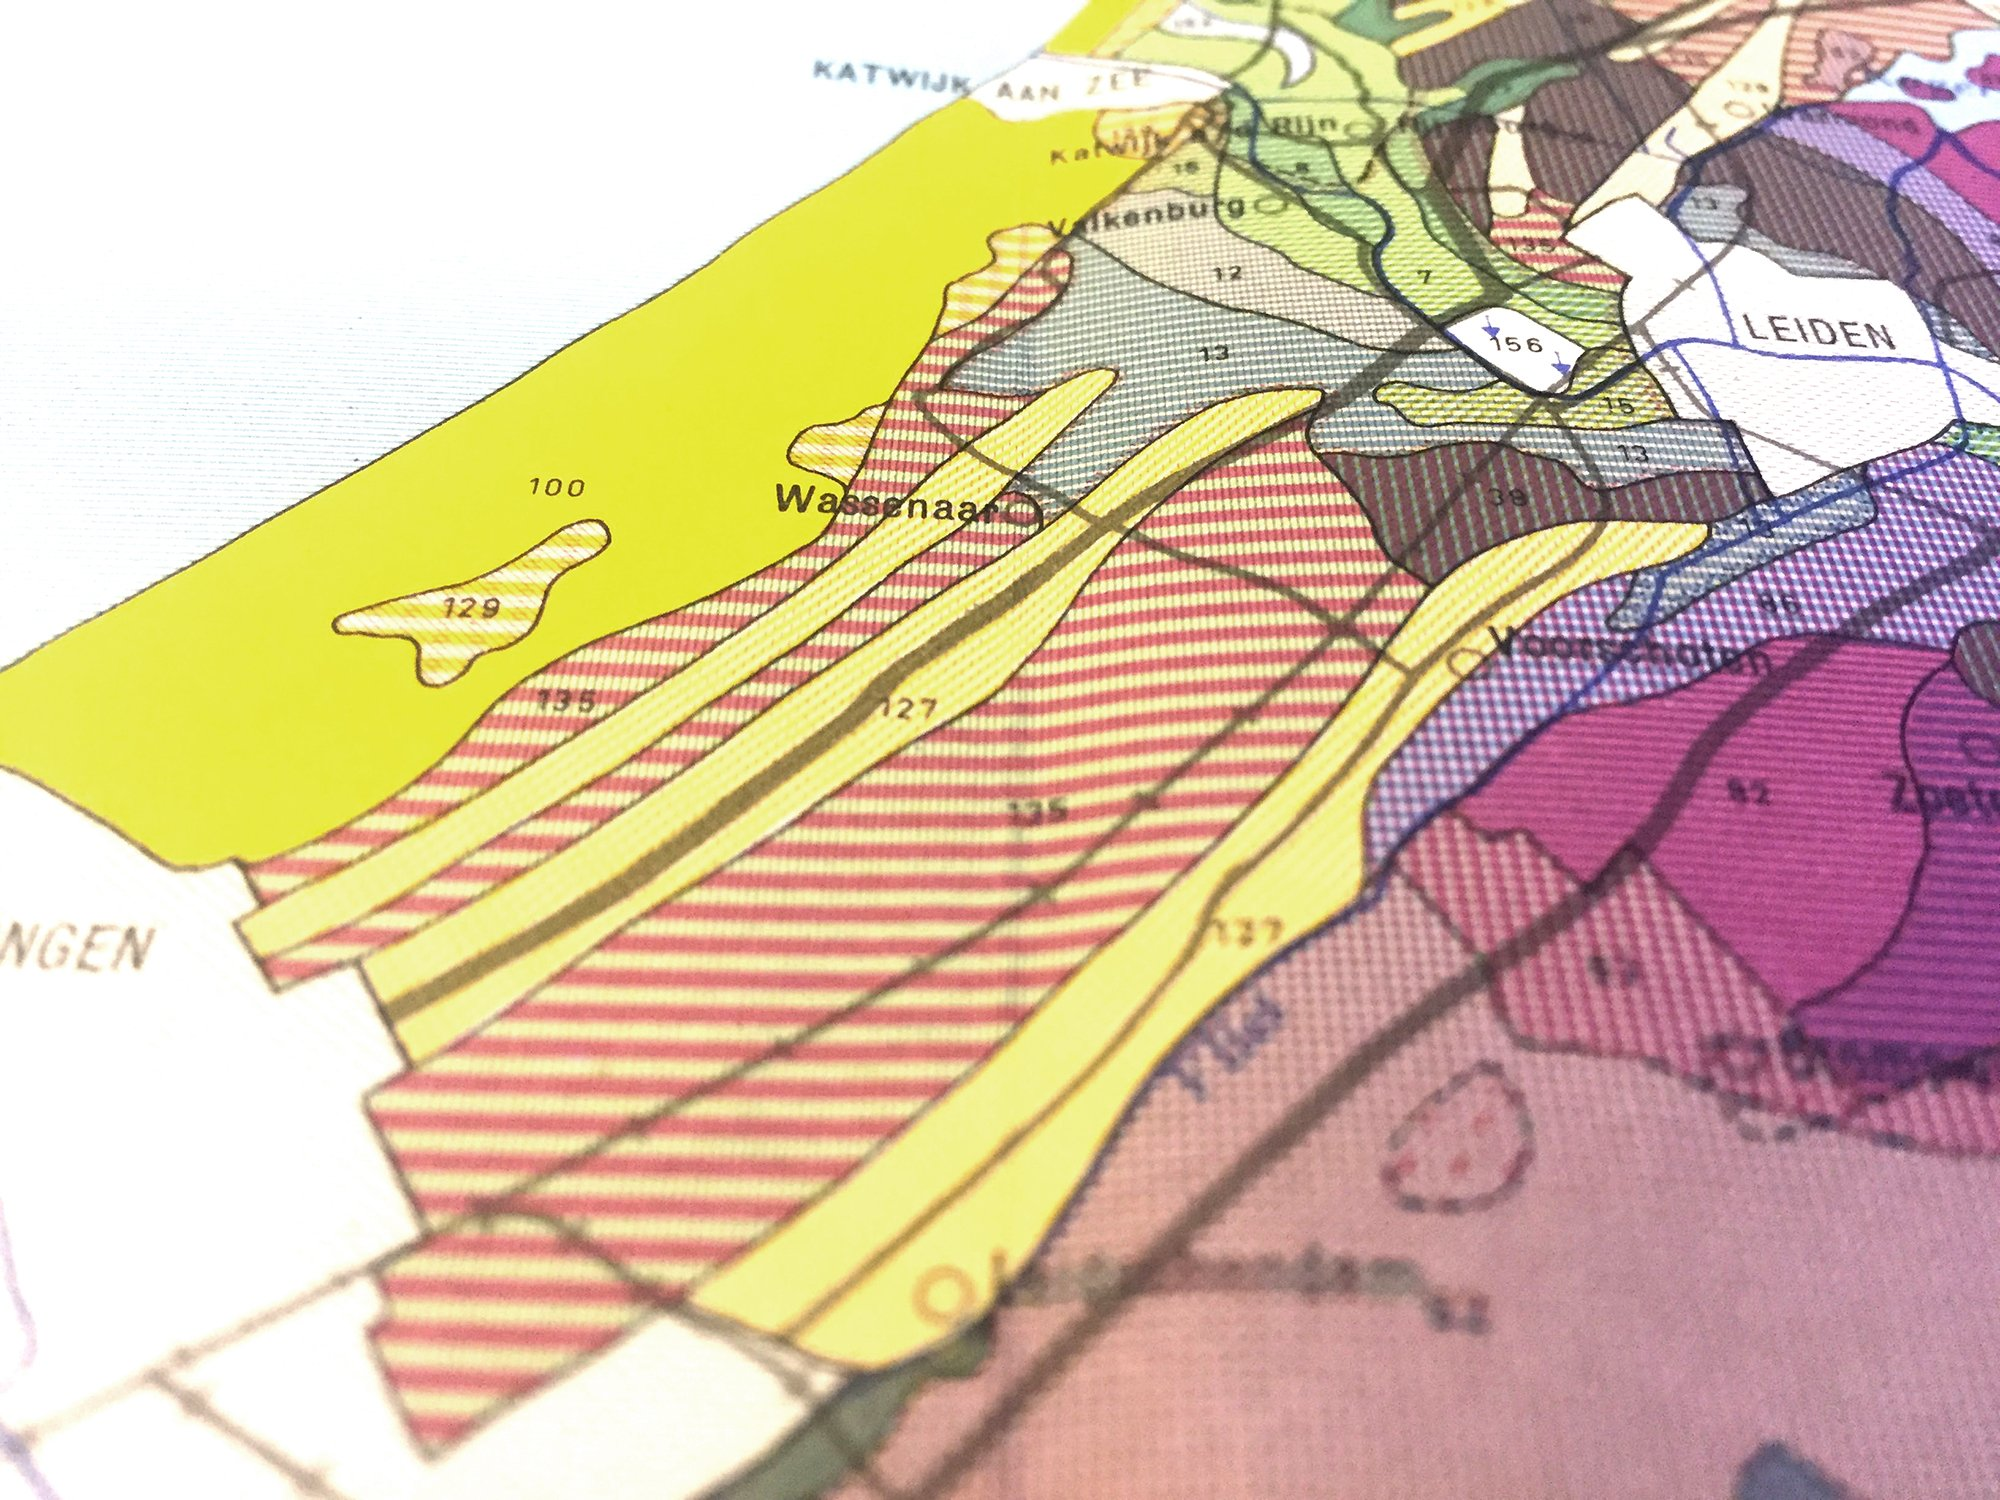 Geomorphological map showing the strips of old dunes. Buitenvoorde is part of this valuable historical landscape